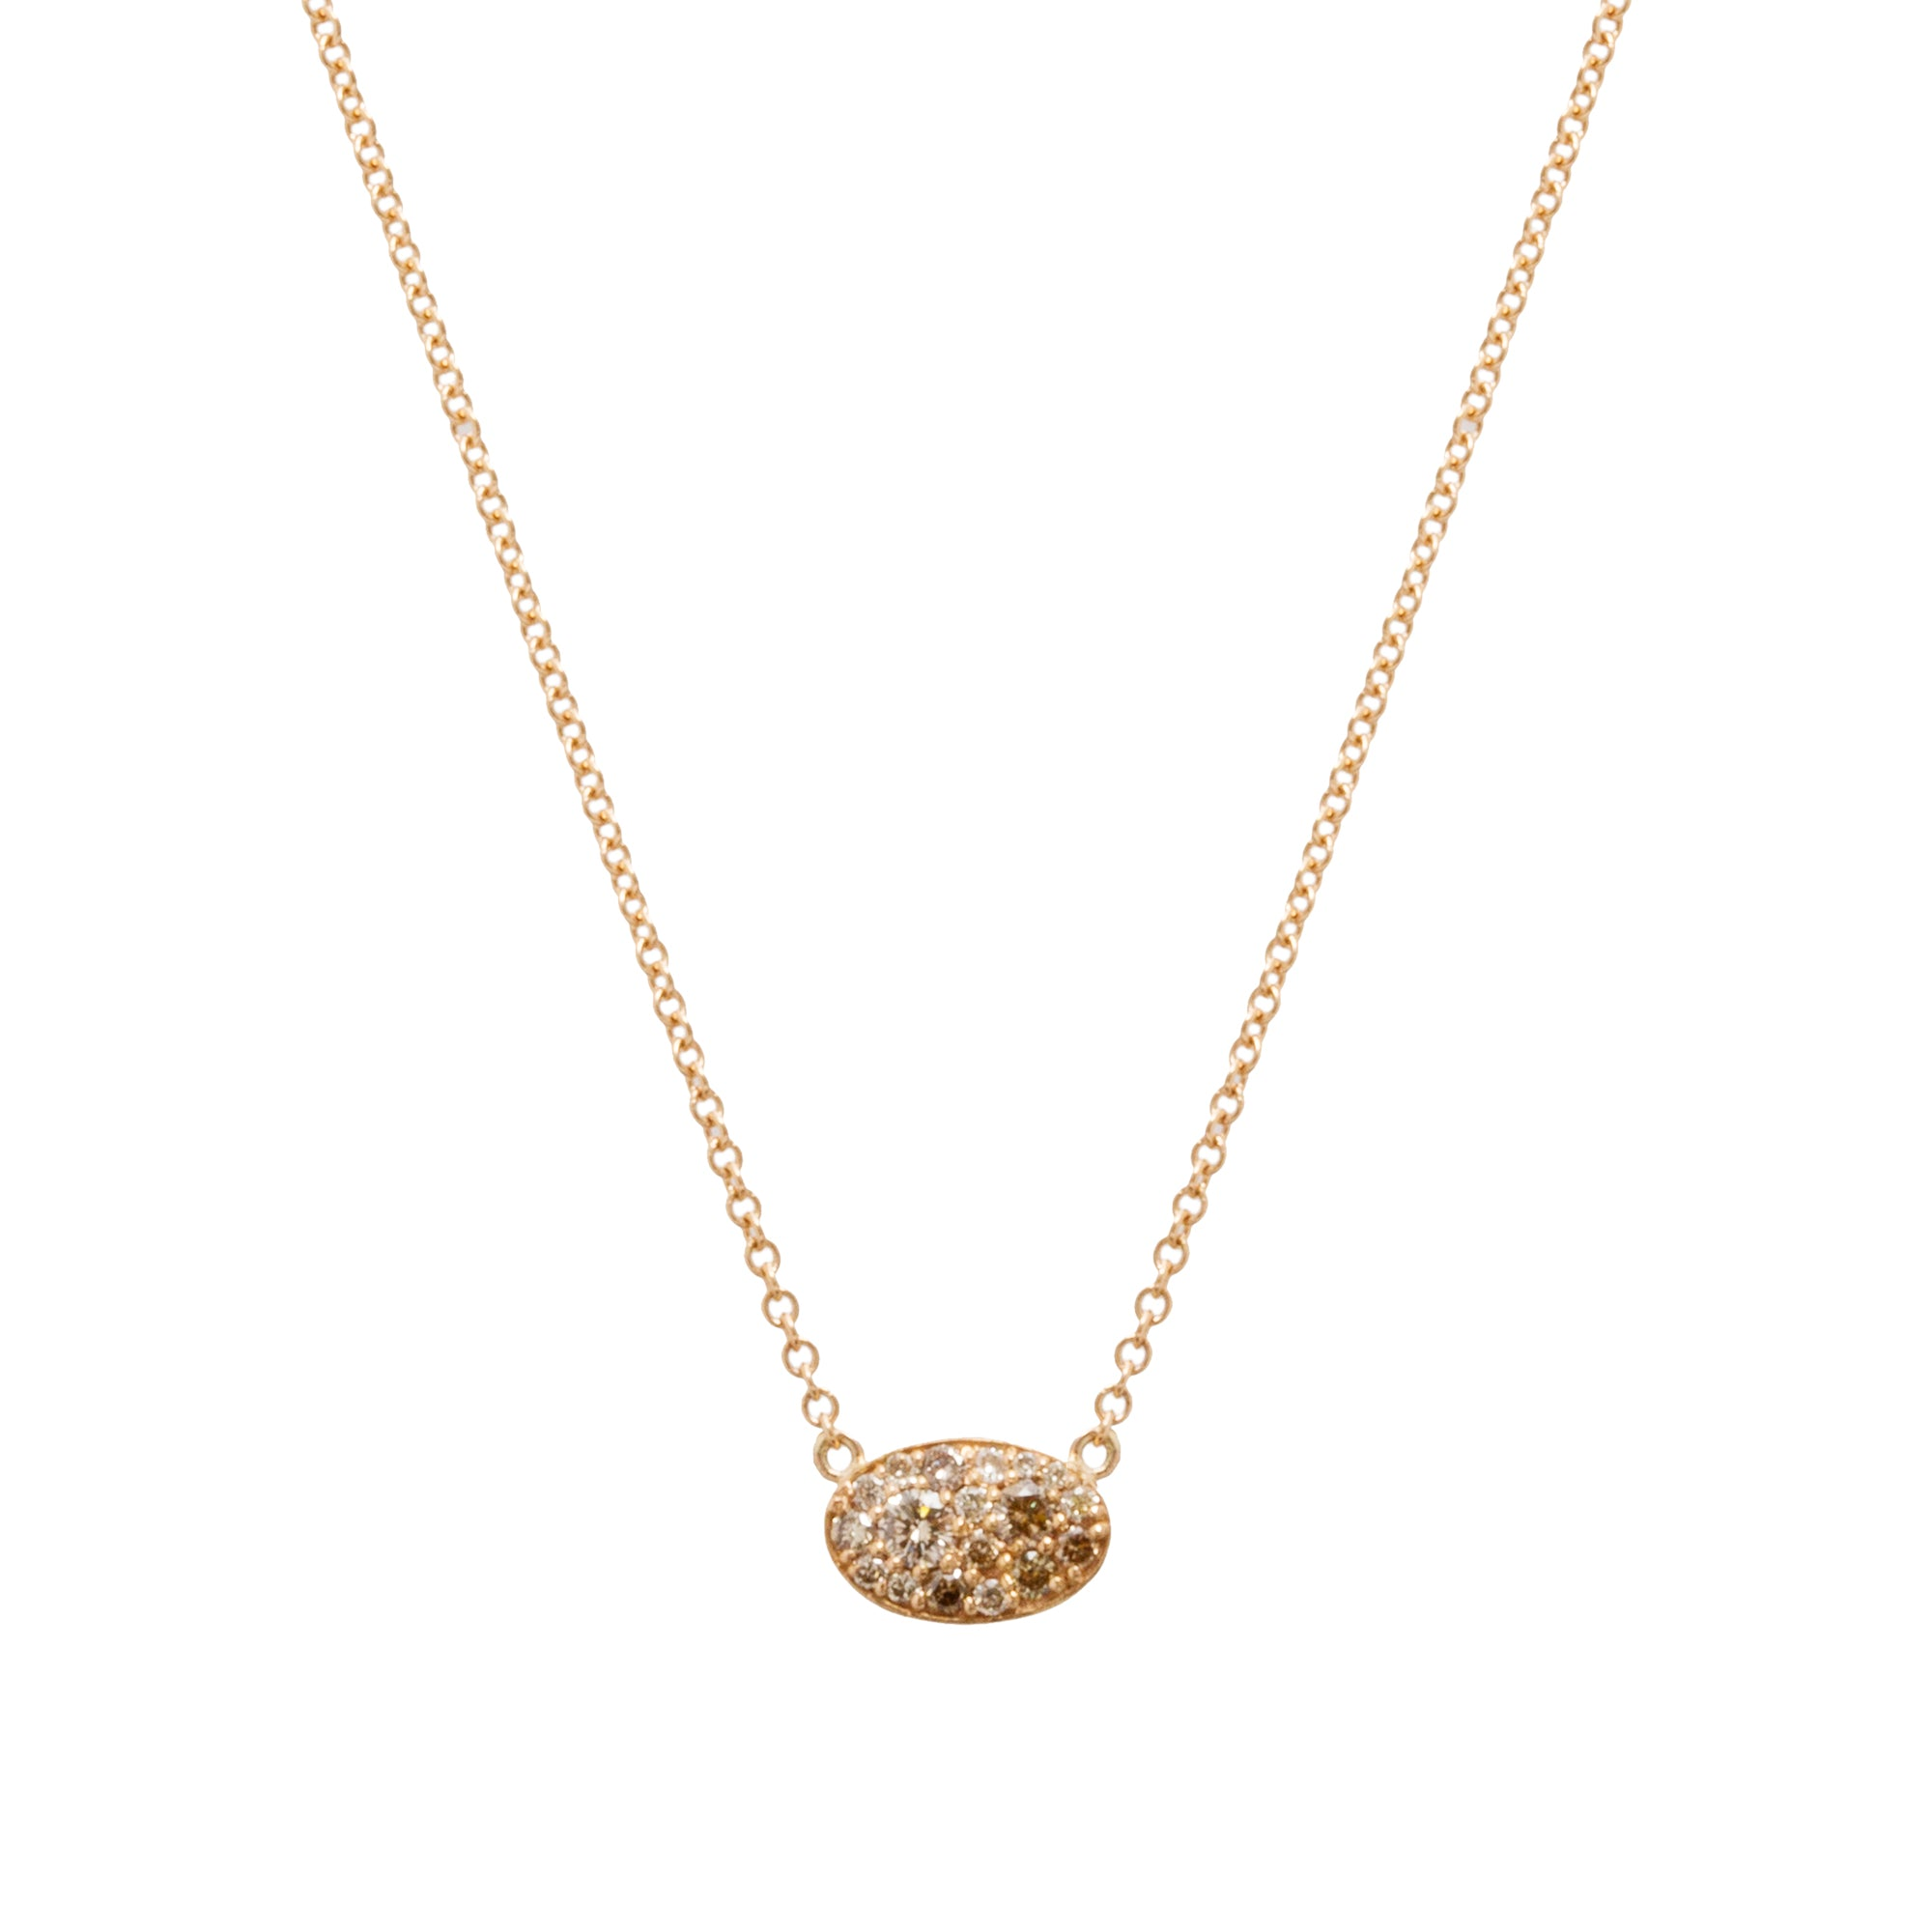 Champagne Diamond Les Chevaliers Necklace